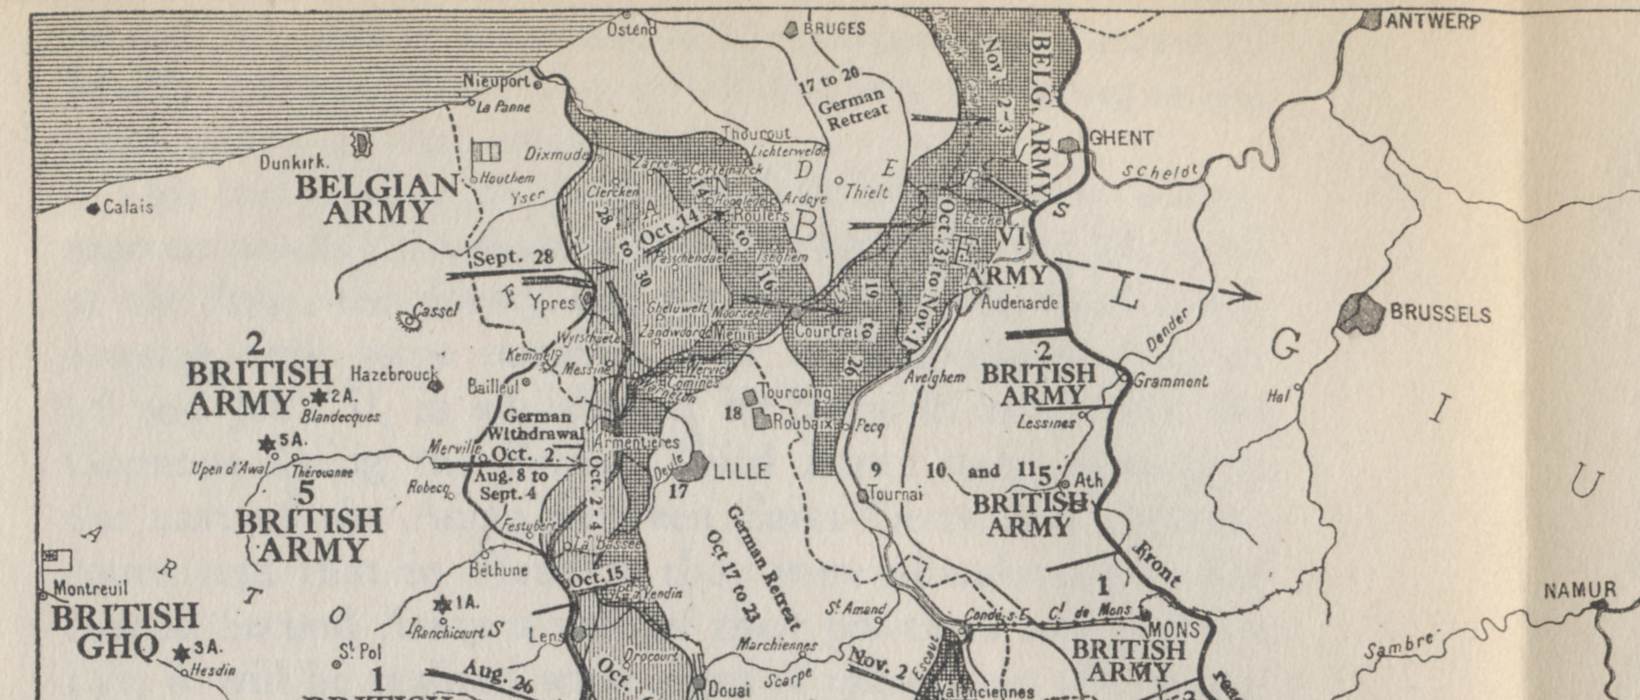 Detail showing the northern, Belgian sector of the Western Front from a map of the Allied offensives of 1918, from July 18 and the Second Battle of the Marne to the Armistice on November 11. From 'The Memoirs of Marshall Foch' by Marshall Foch.